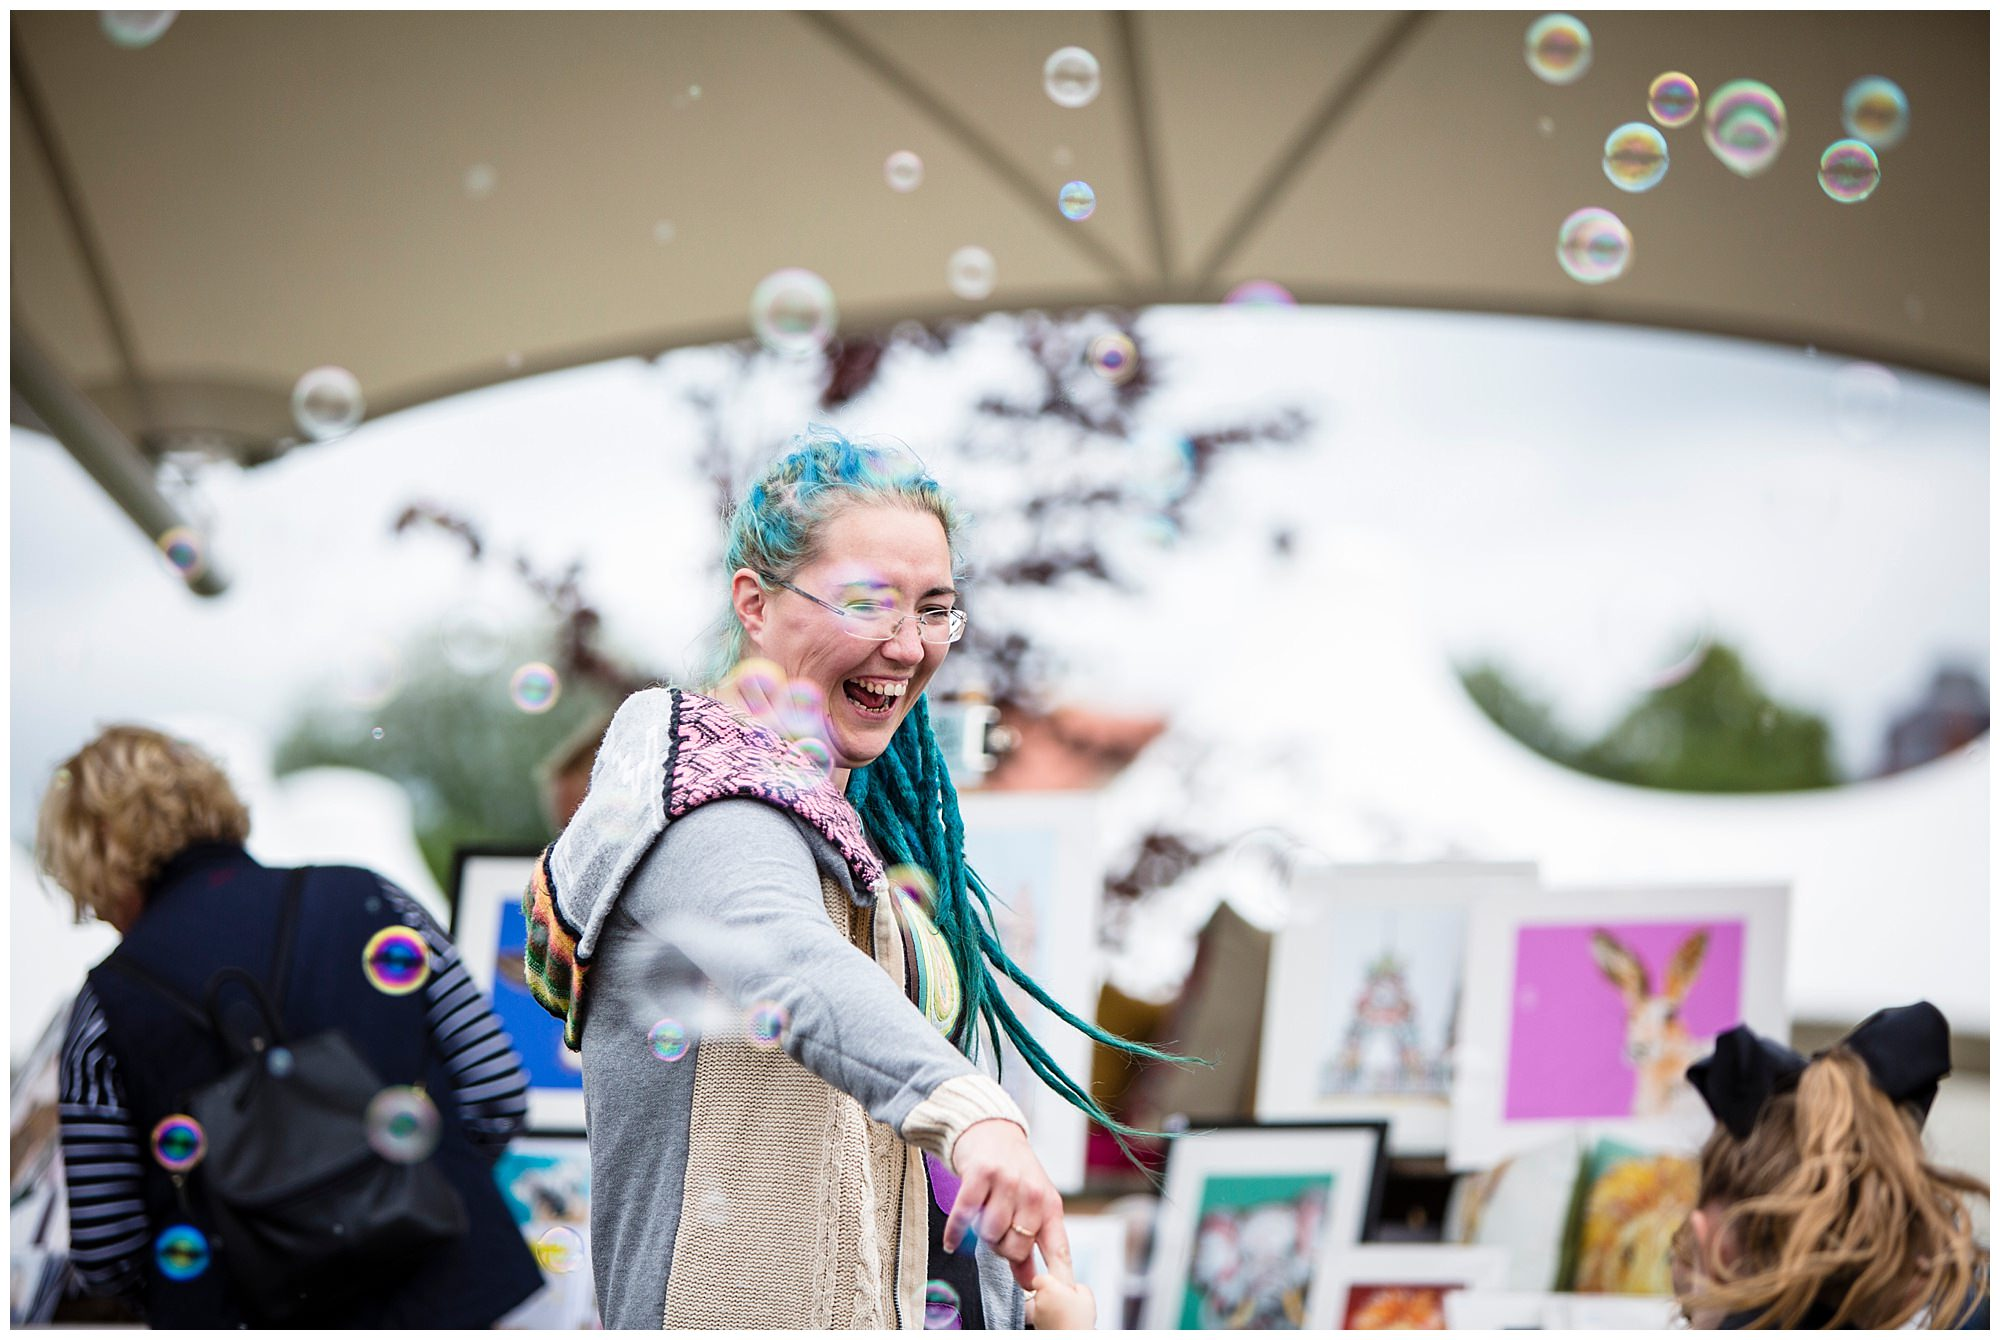 cool lady dancing amongst the bubbles at chester race course event parentfolk